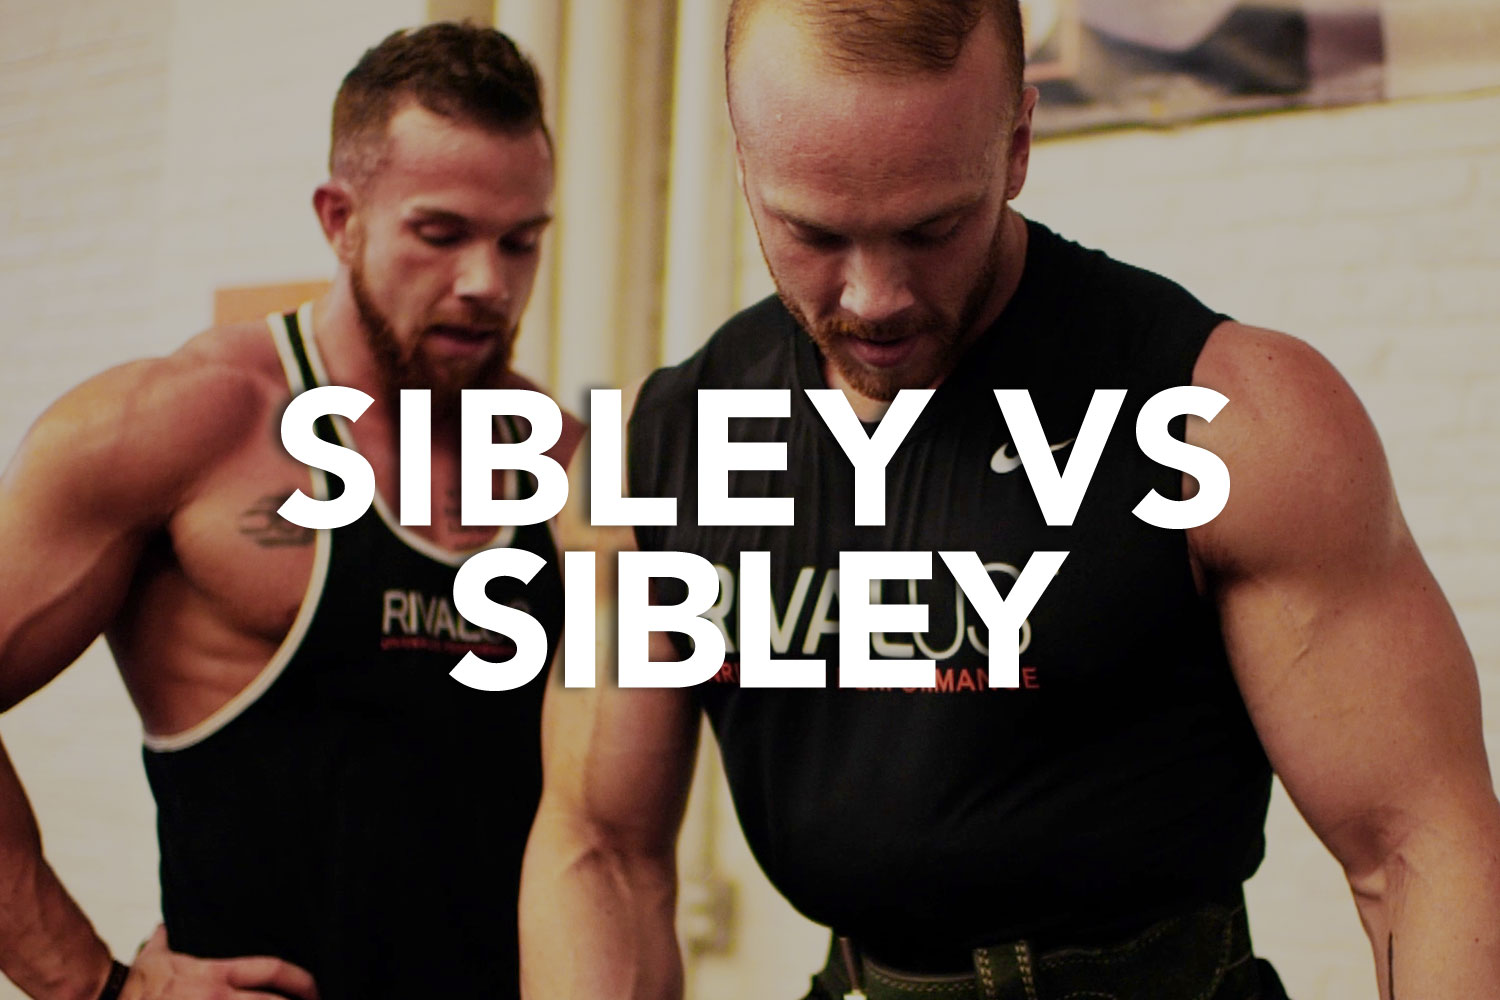 VS Series : Sibley VS Sibley